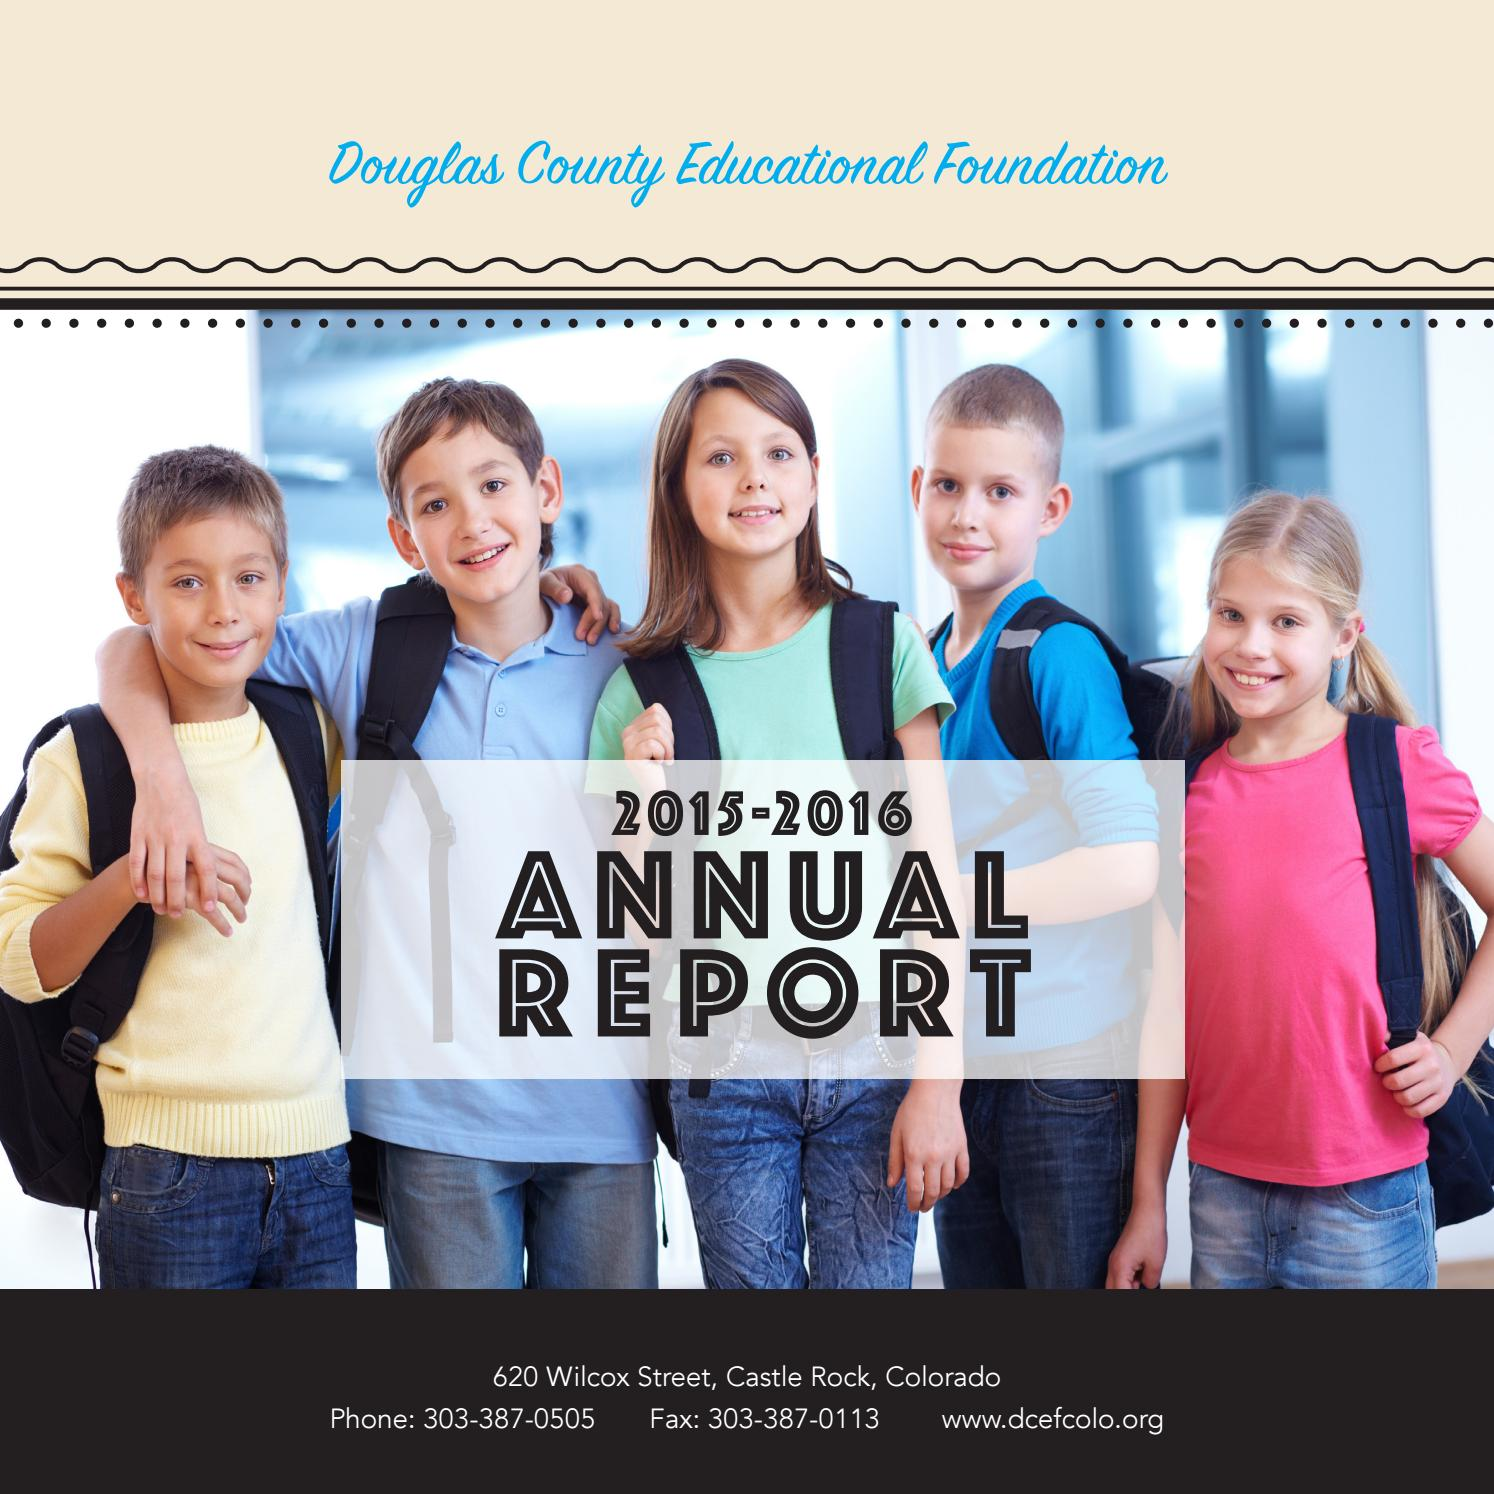 DCEF Annual Report By Douglas County School Distrct